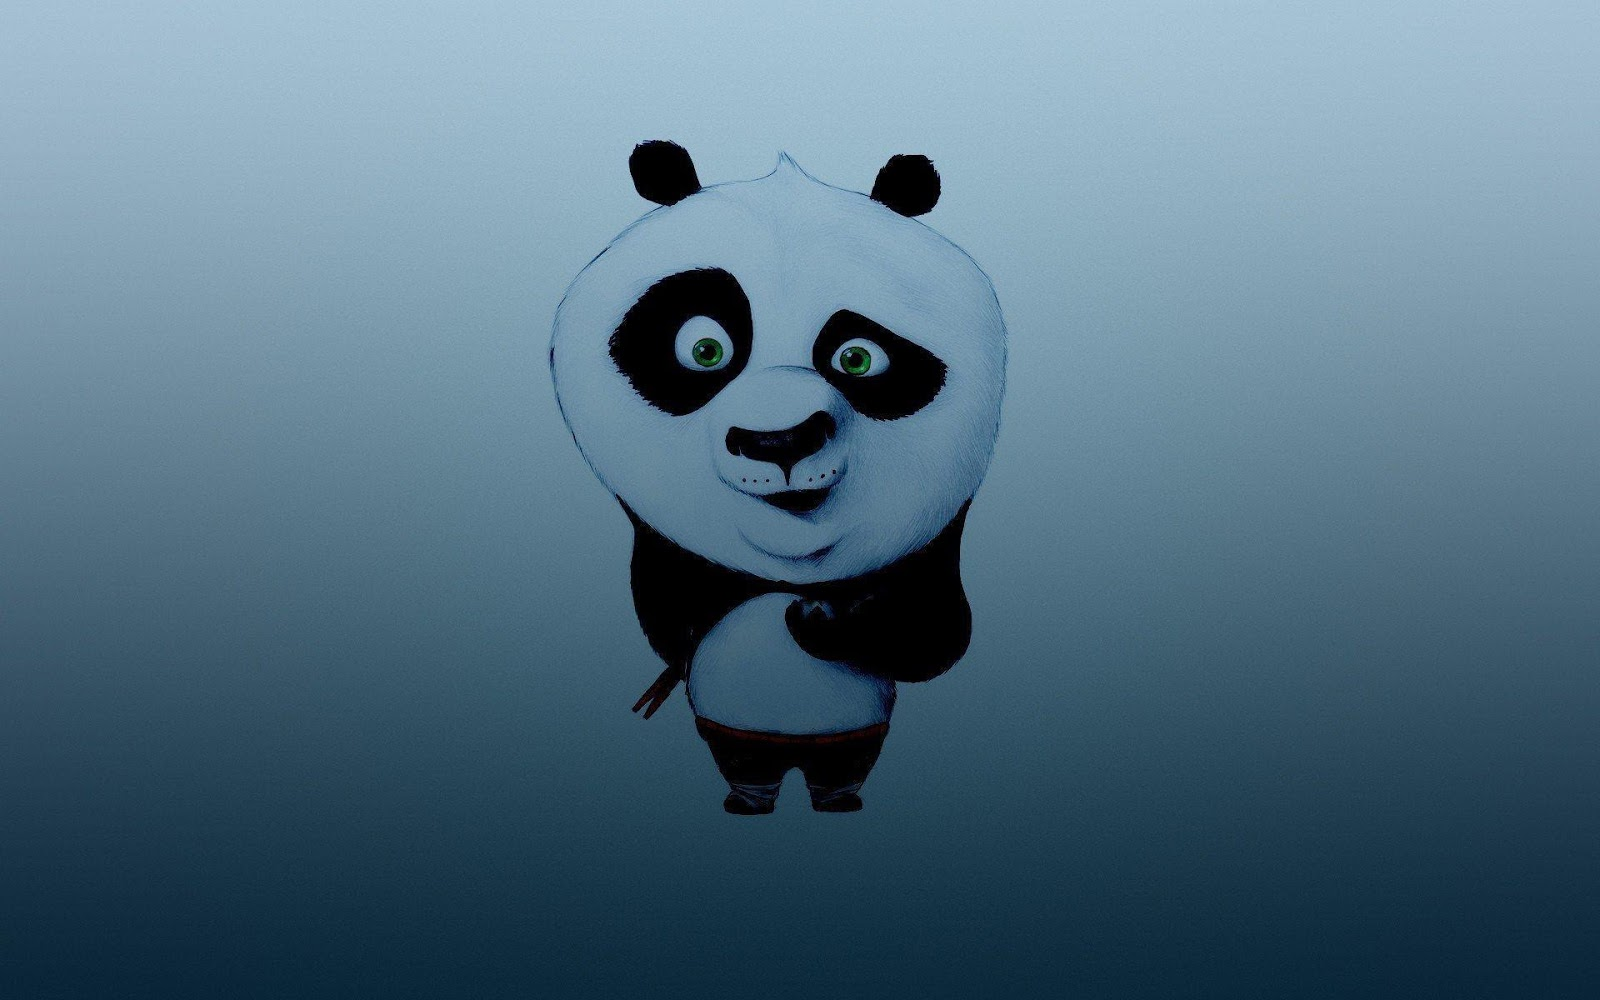 Funny panda Art Wallpapers